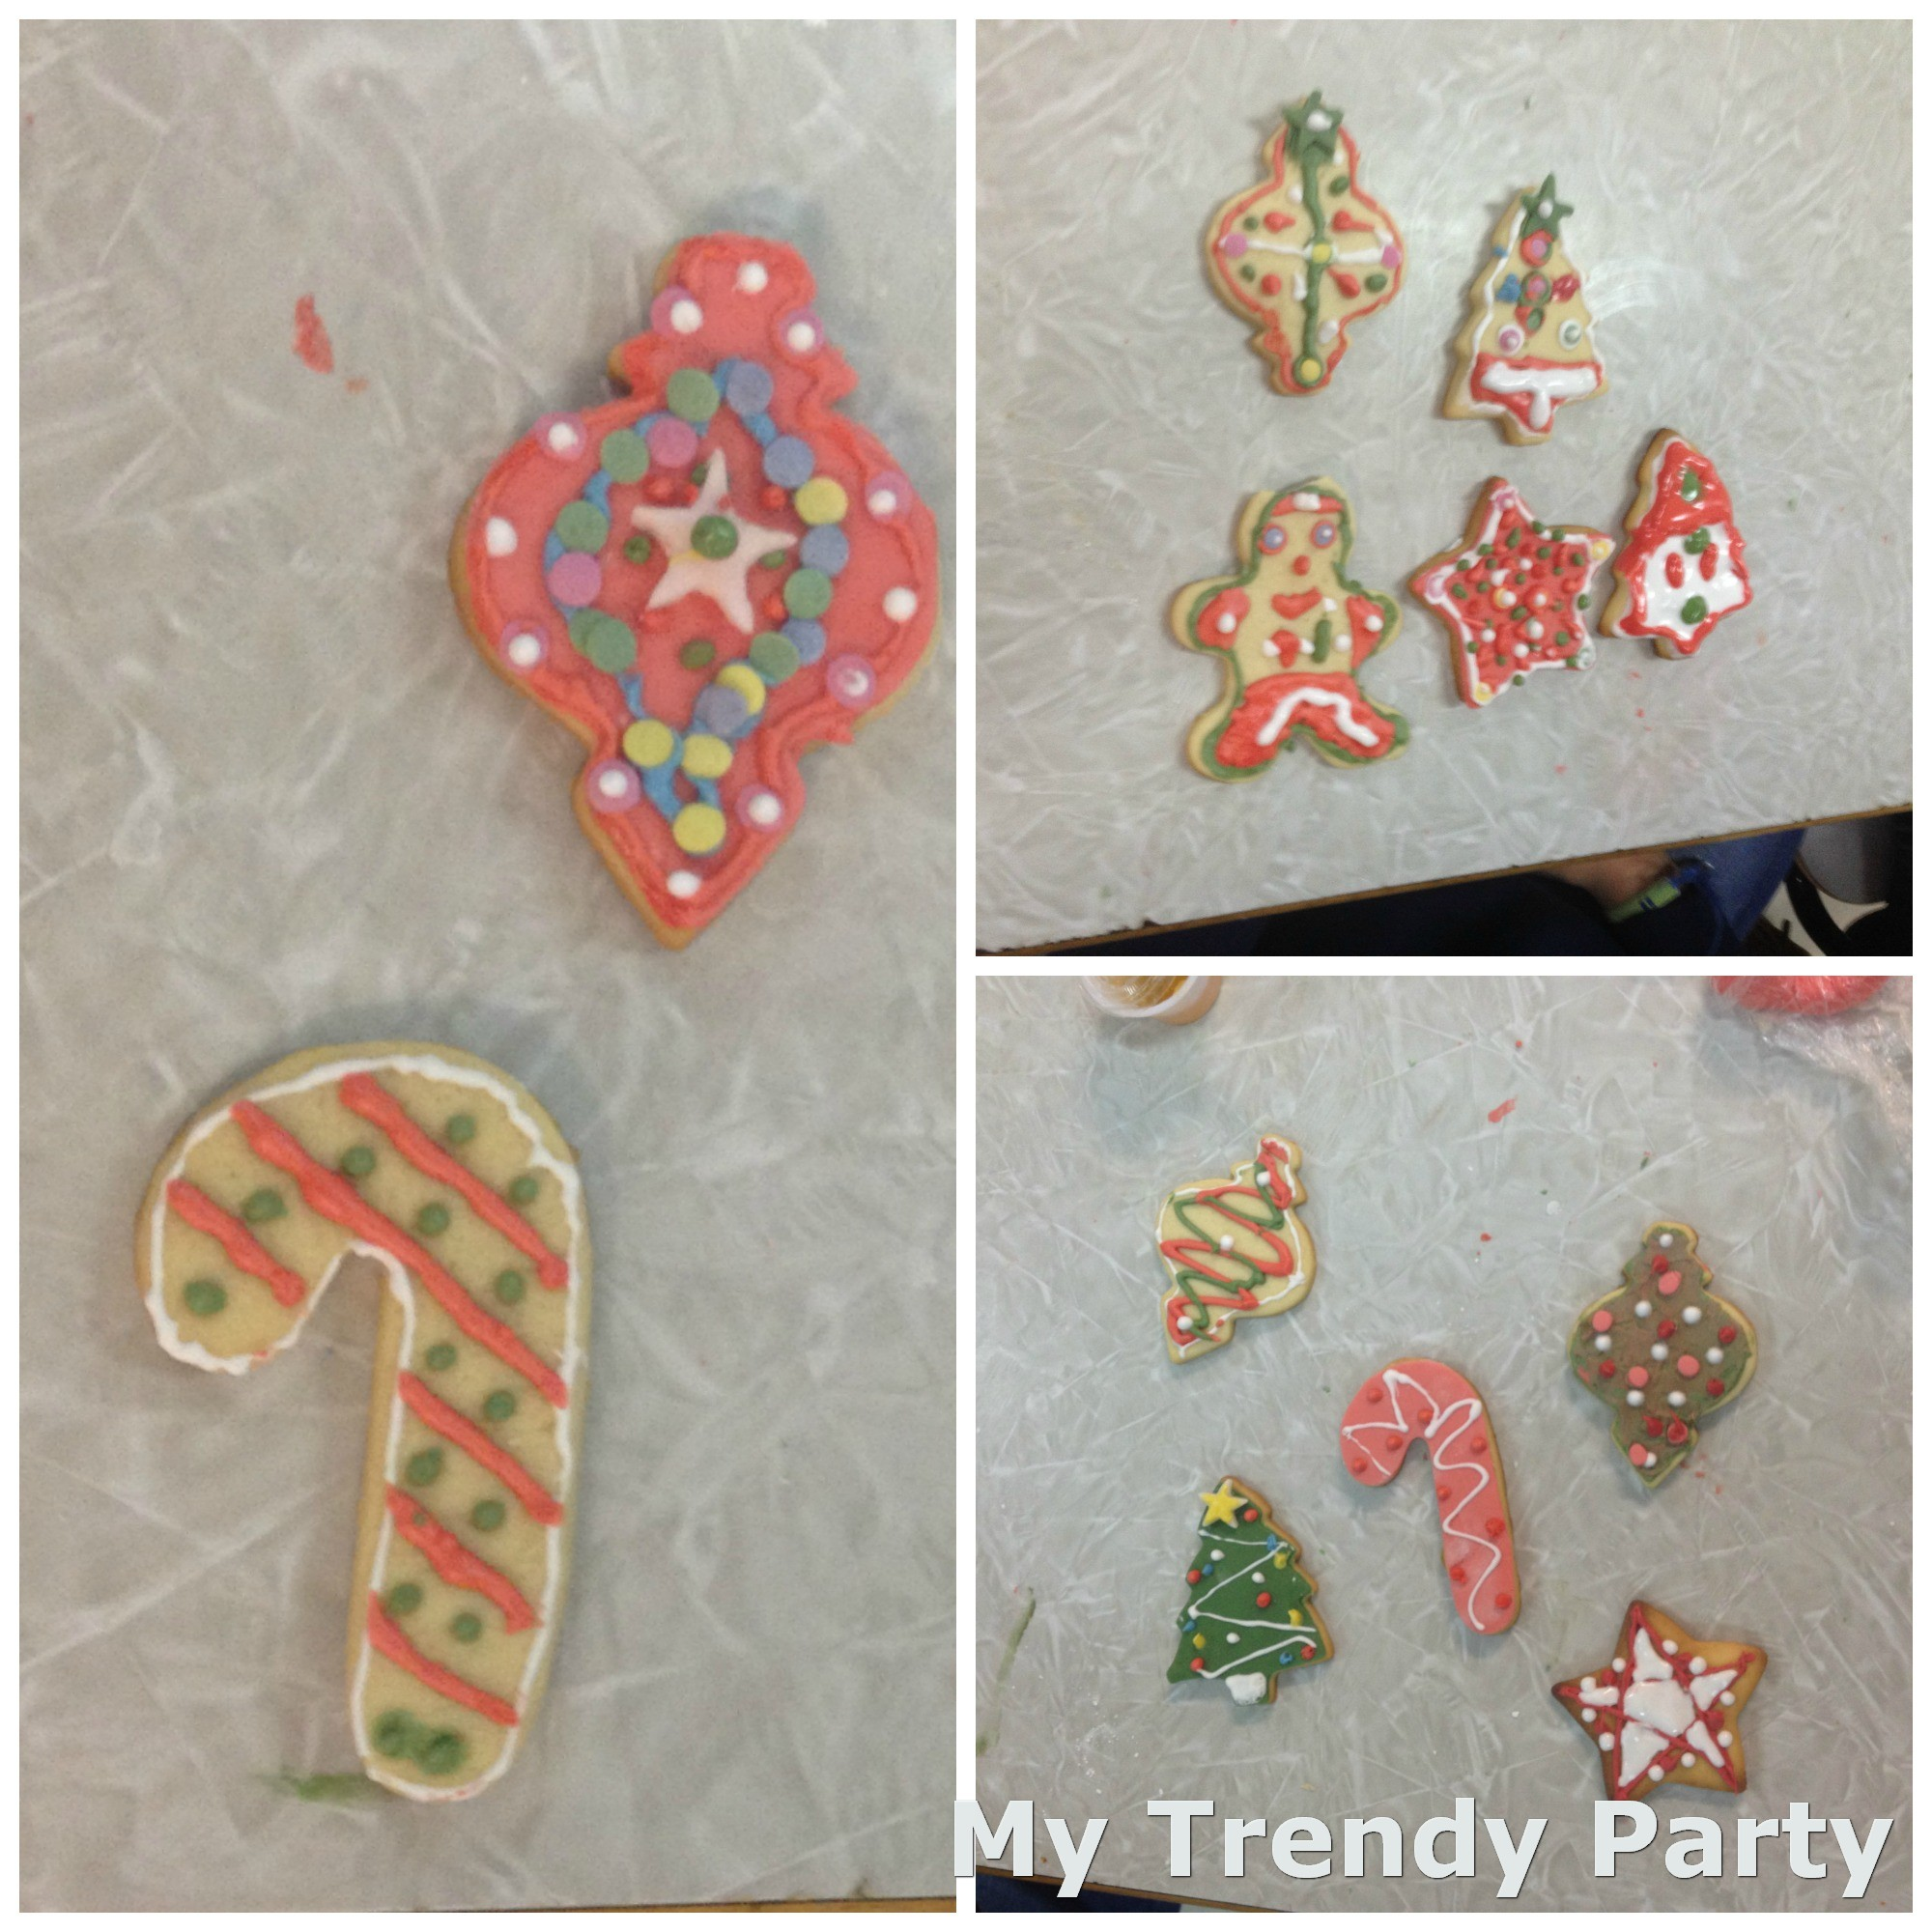 Decorar Galletas Con Niños Curso De Galletas Galletas NavideÑas My Trendy Party